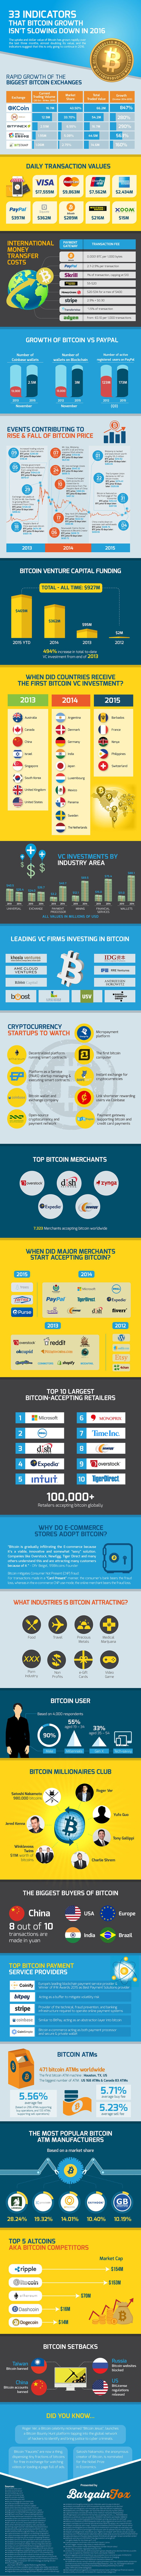 Should the Church Use Bitcoin? [Infographic]